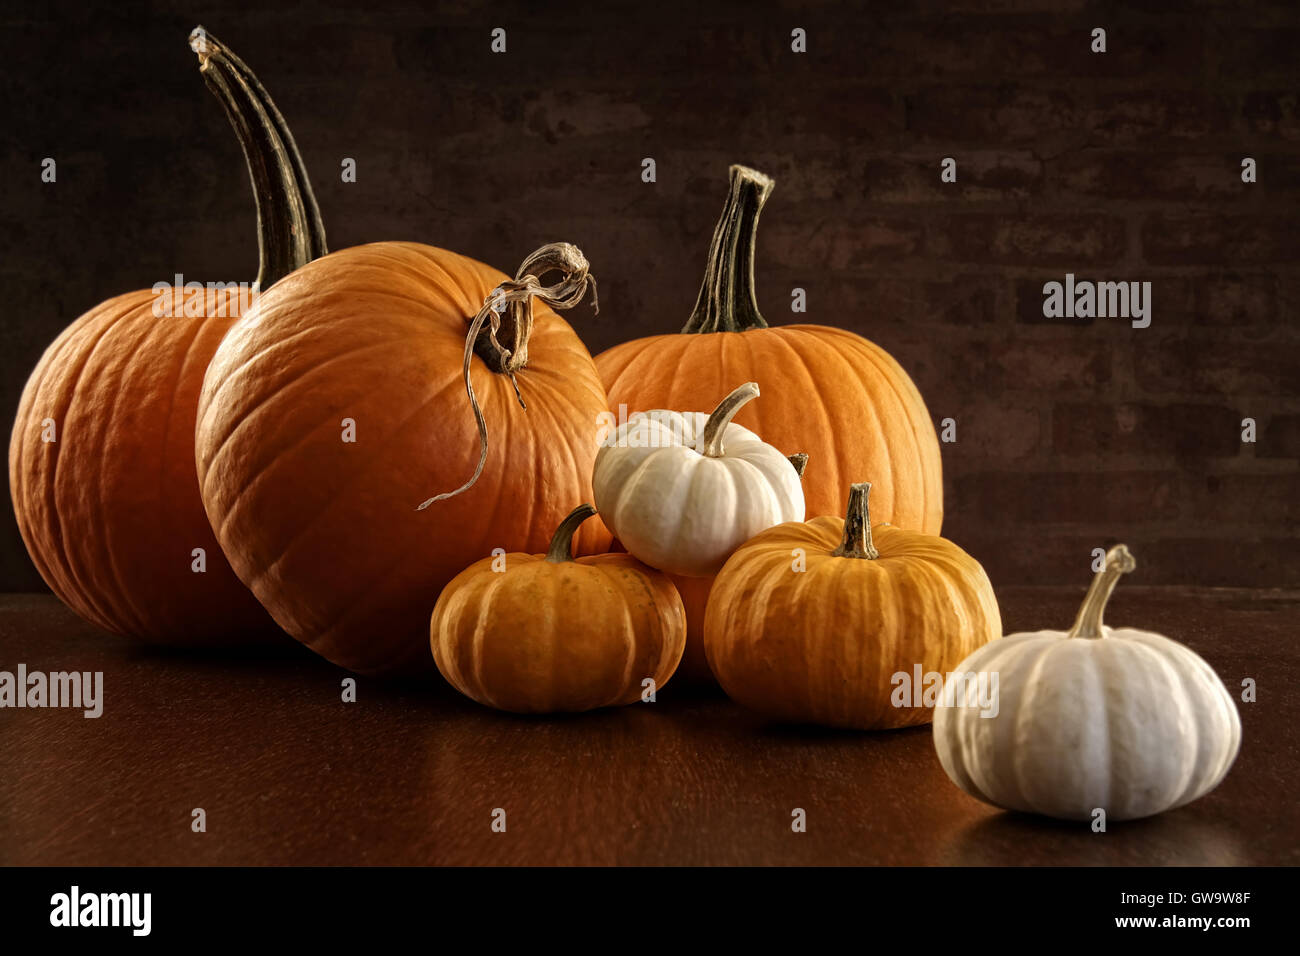 Pumpkins and gourds on table Stock Photo